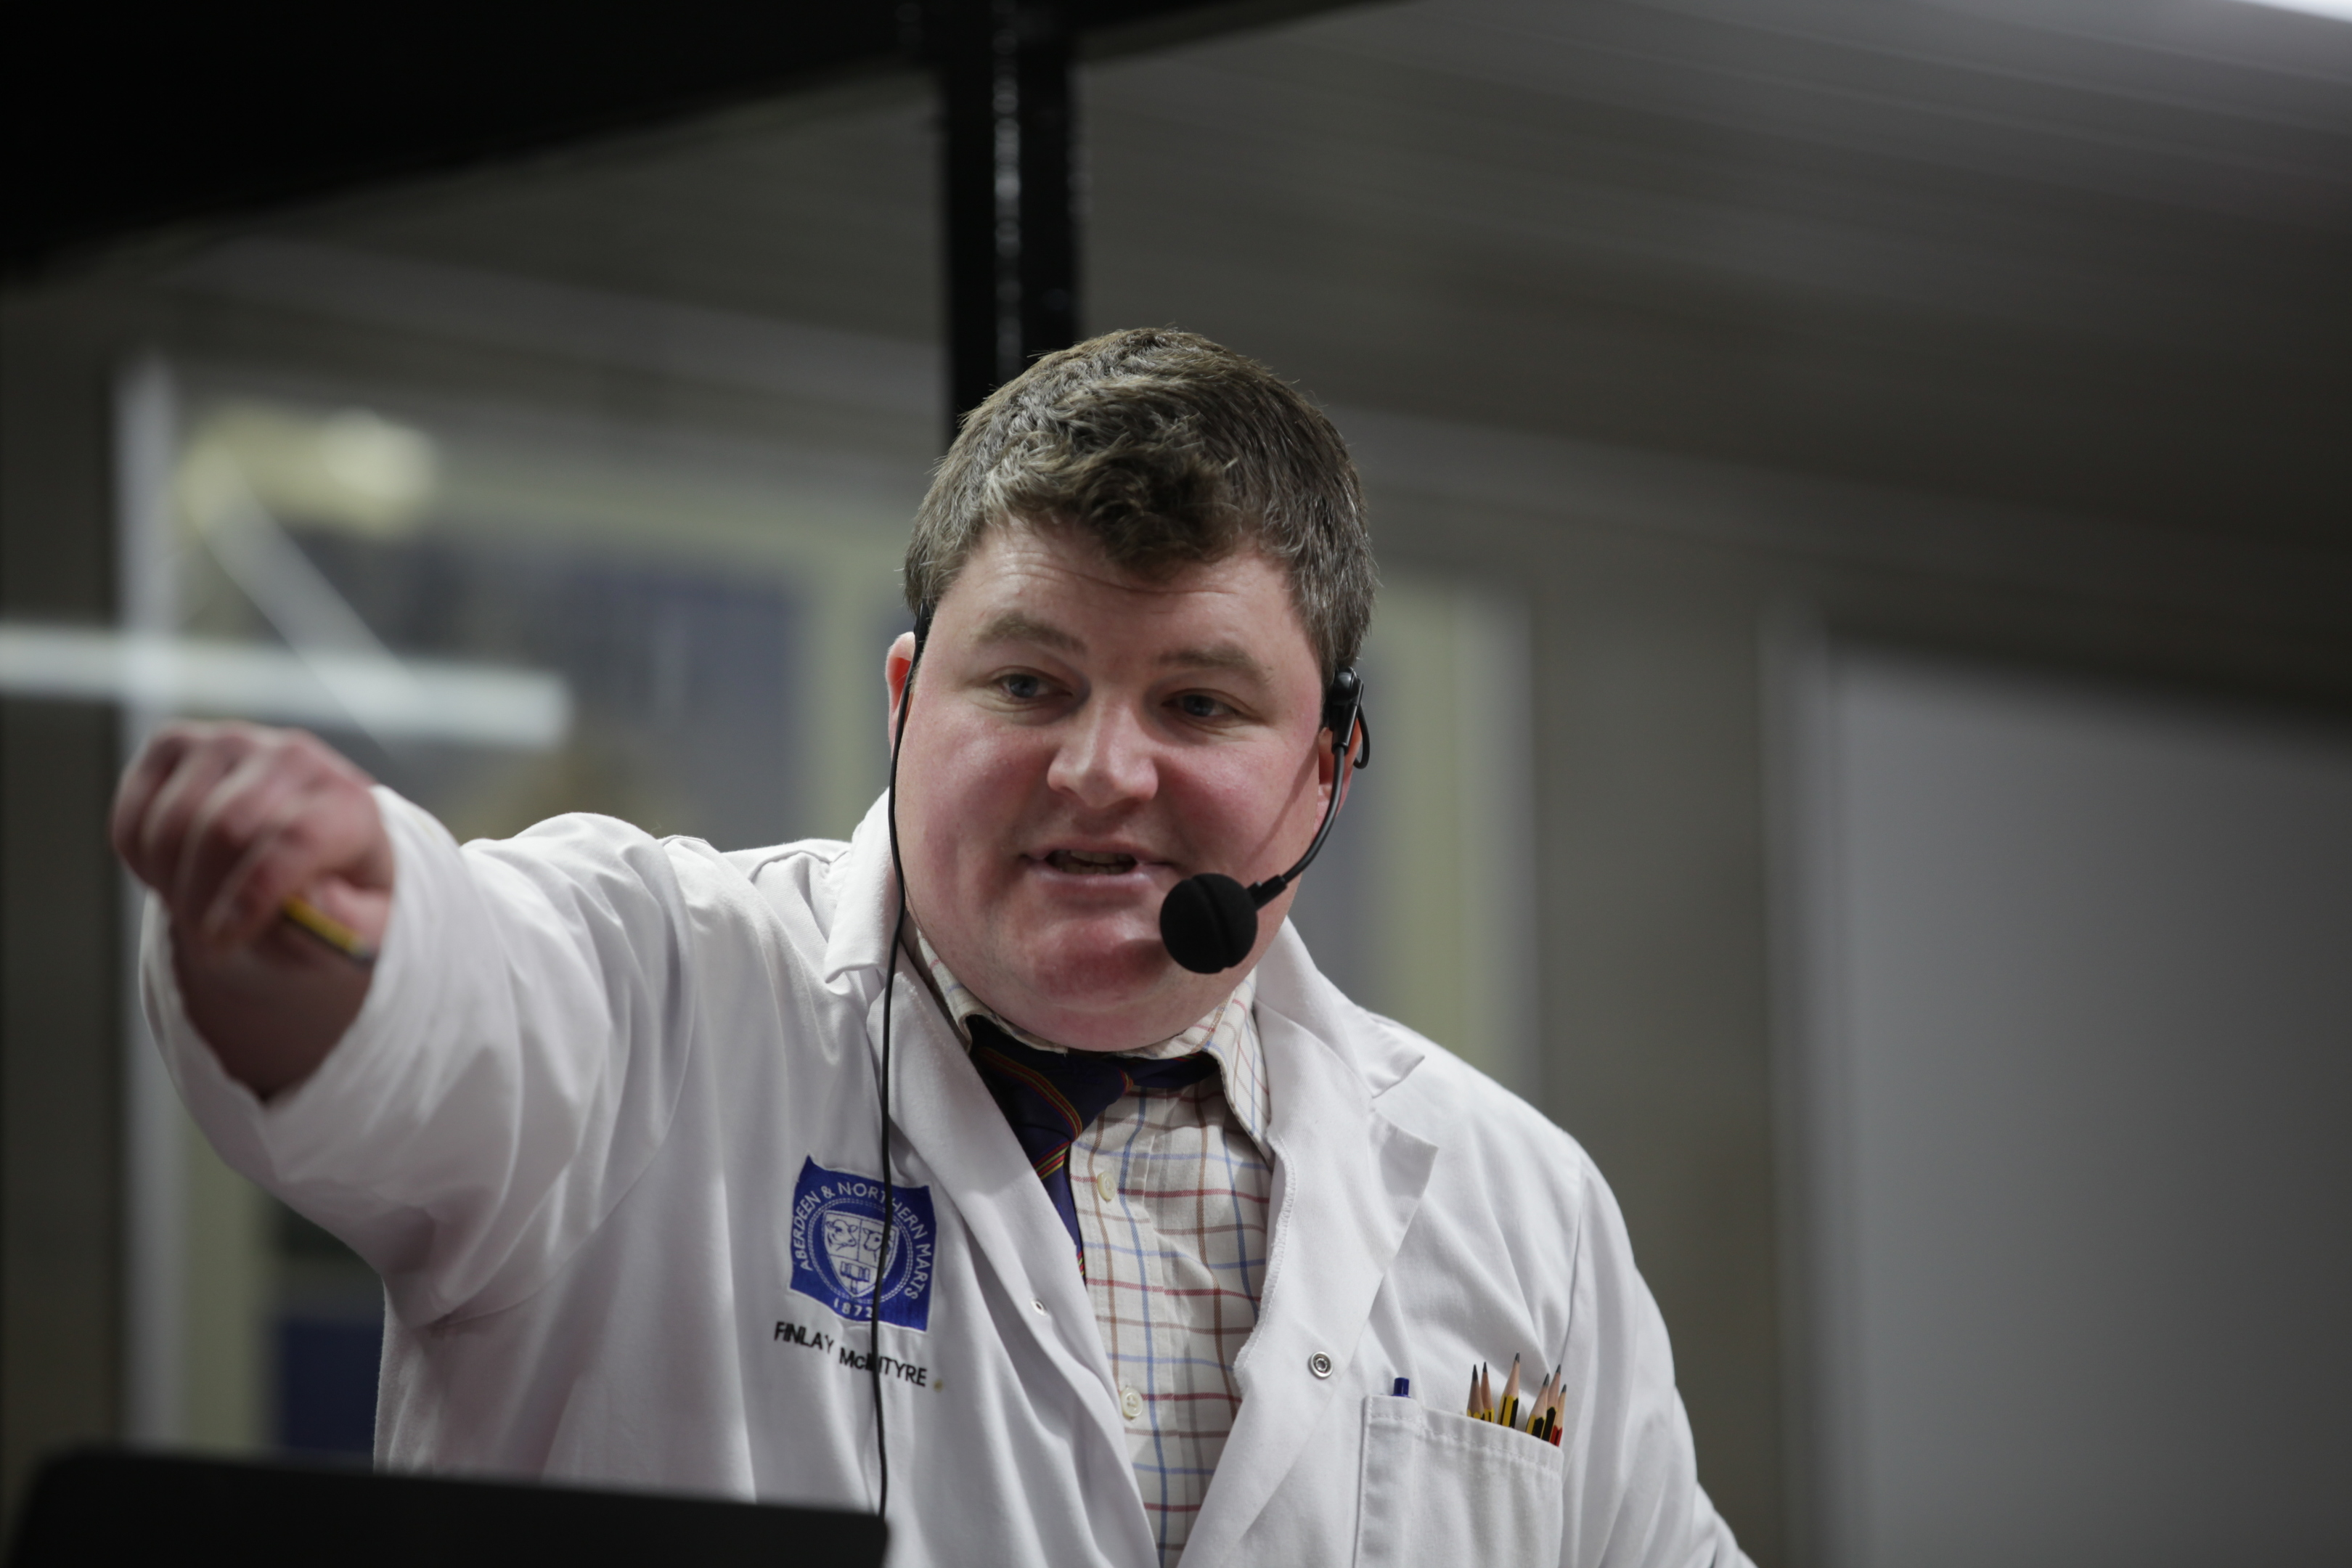 Auctioneer Finlay McIntyre in action on tonight's episode.